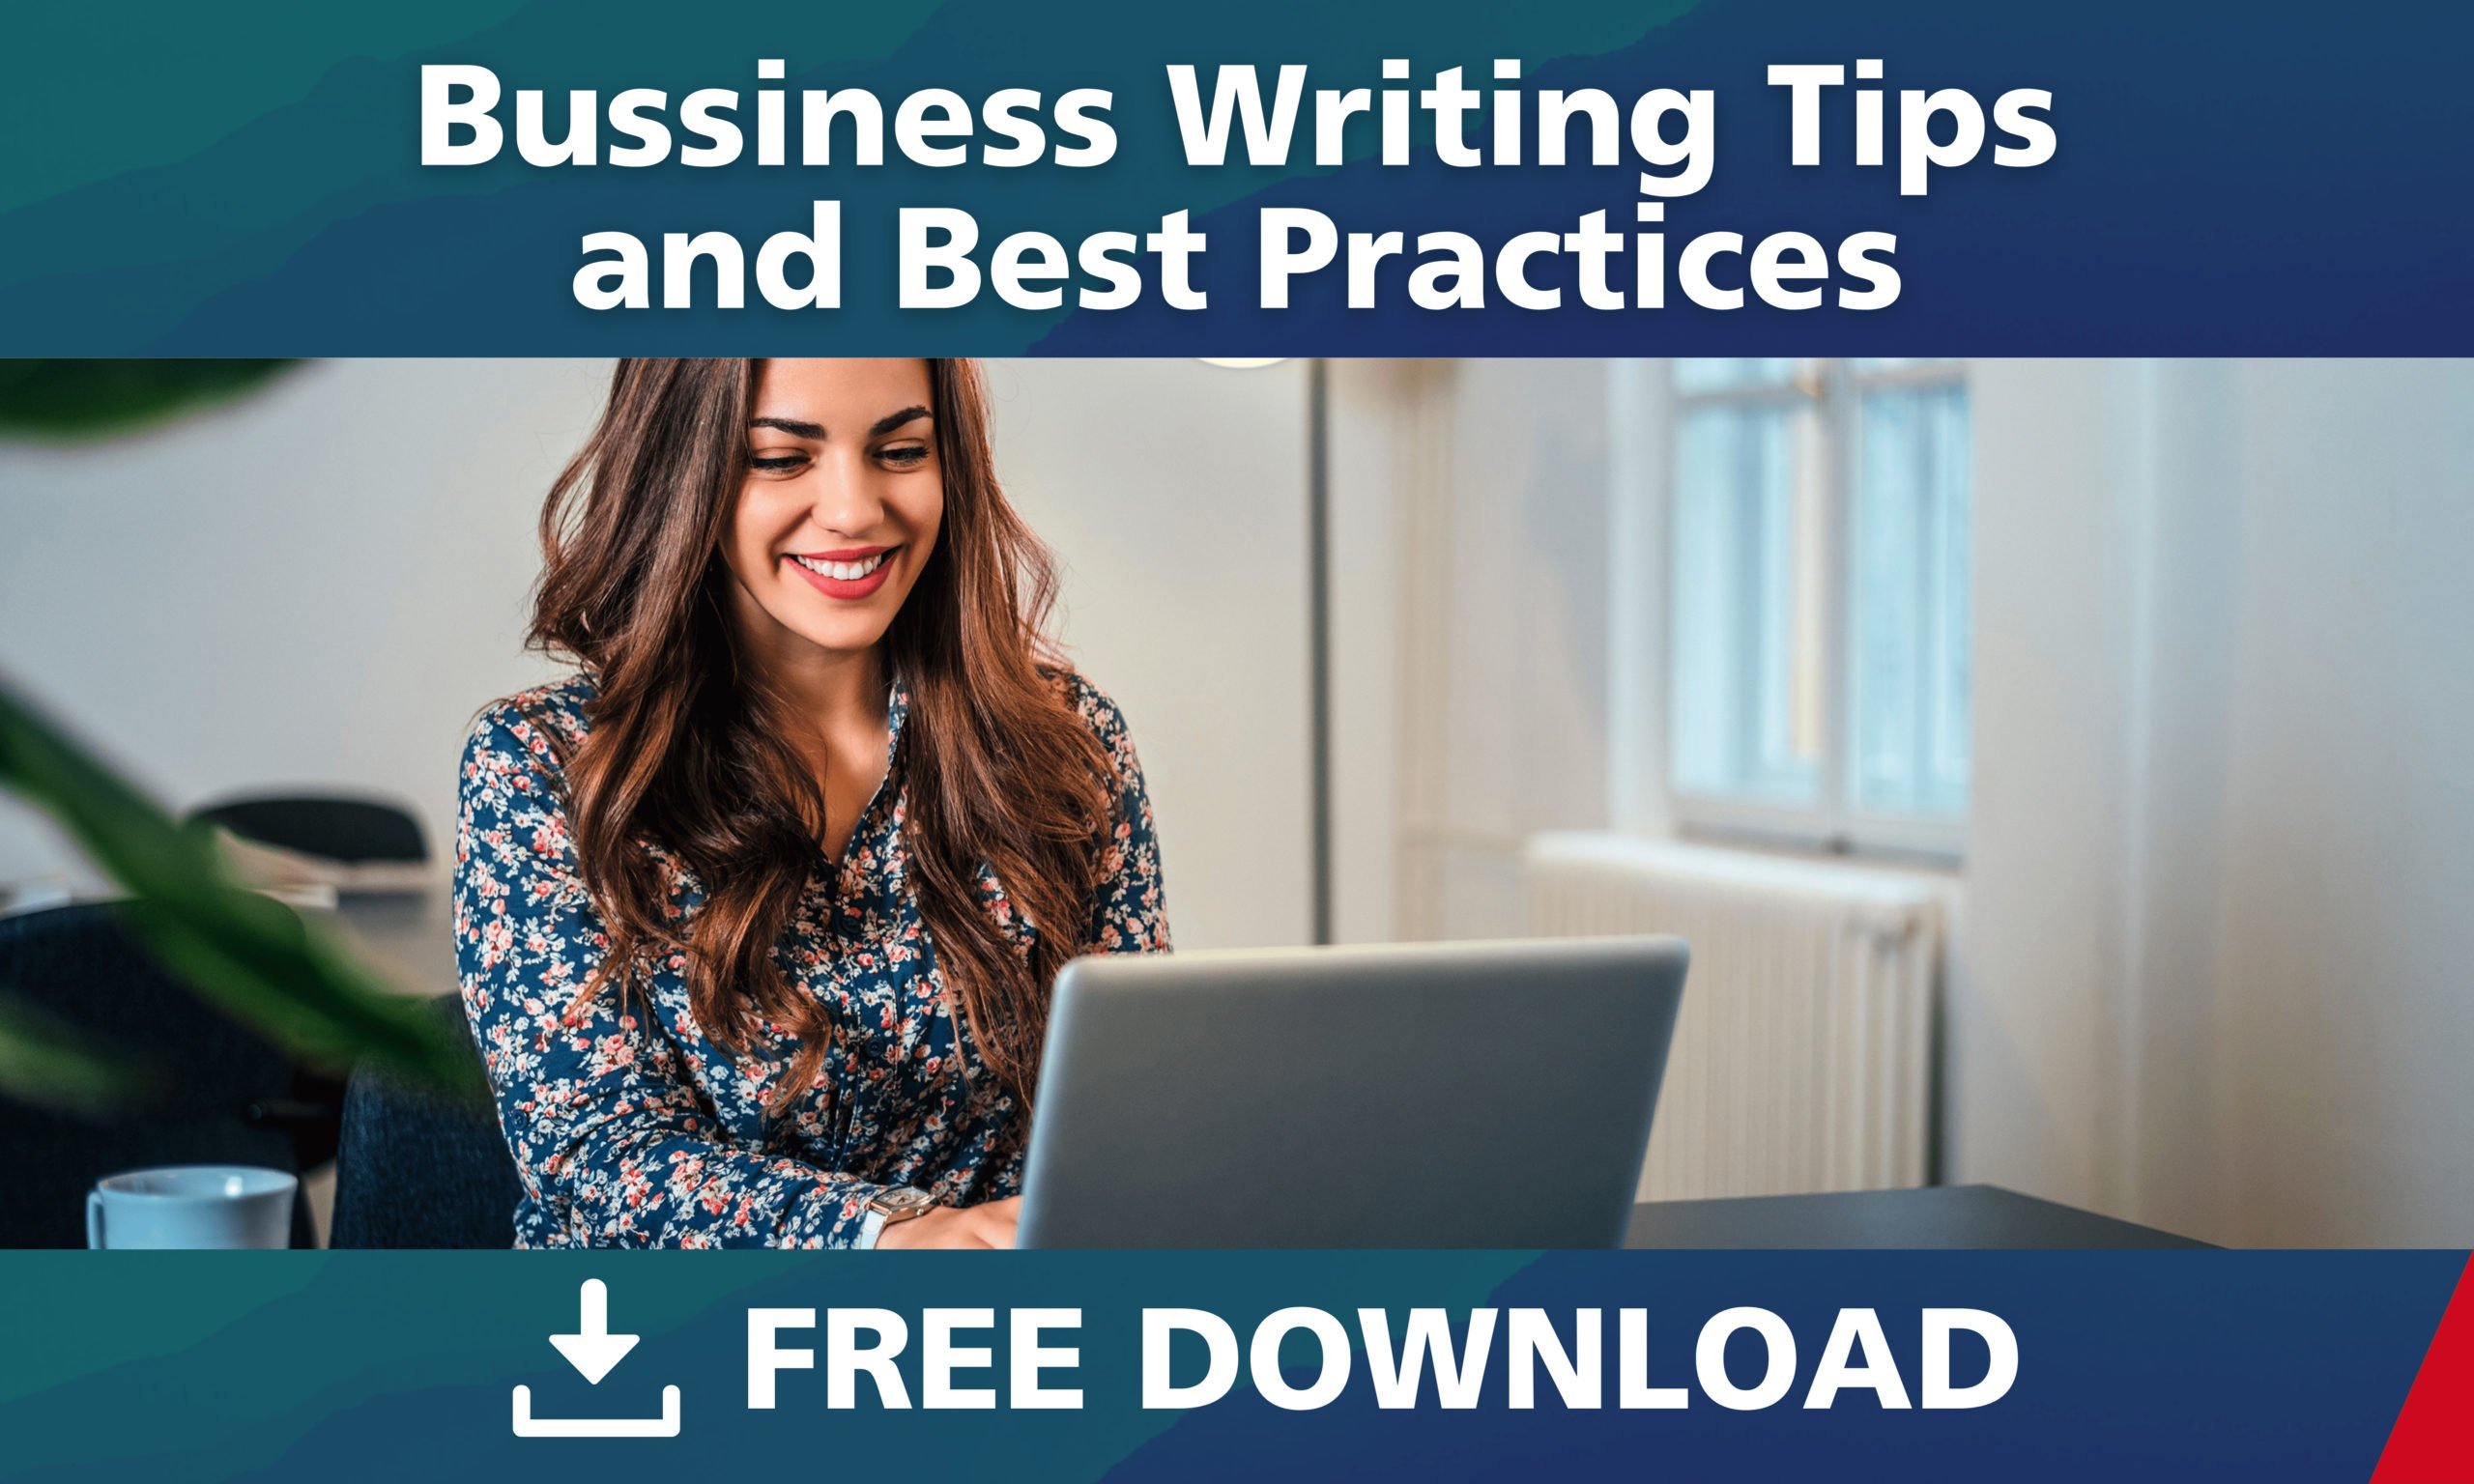 Business Writing Tips and Best Practices